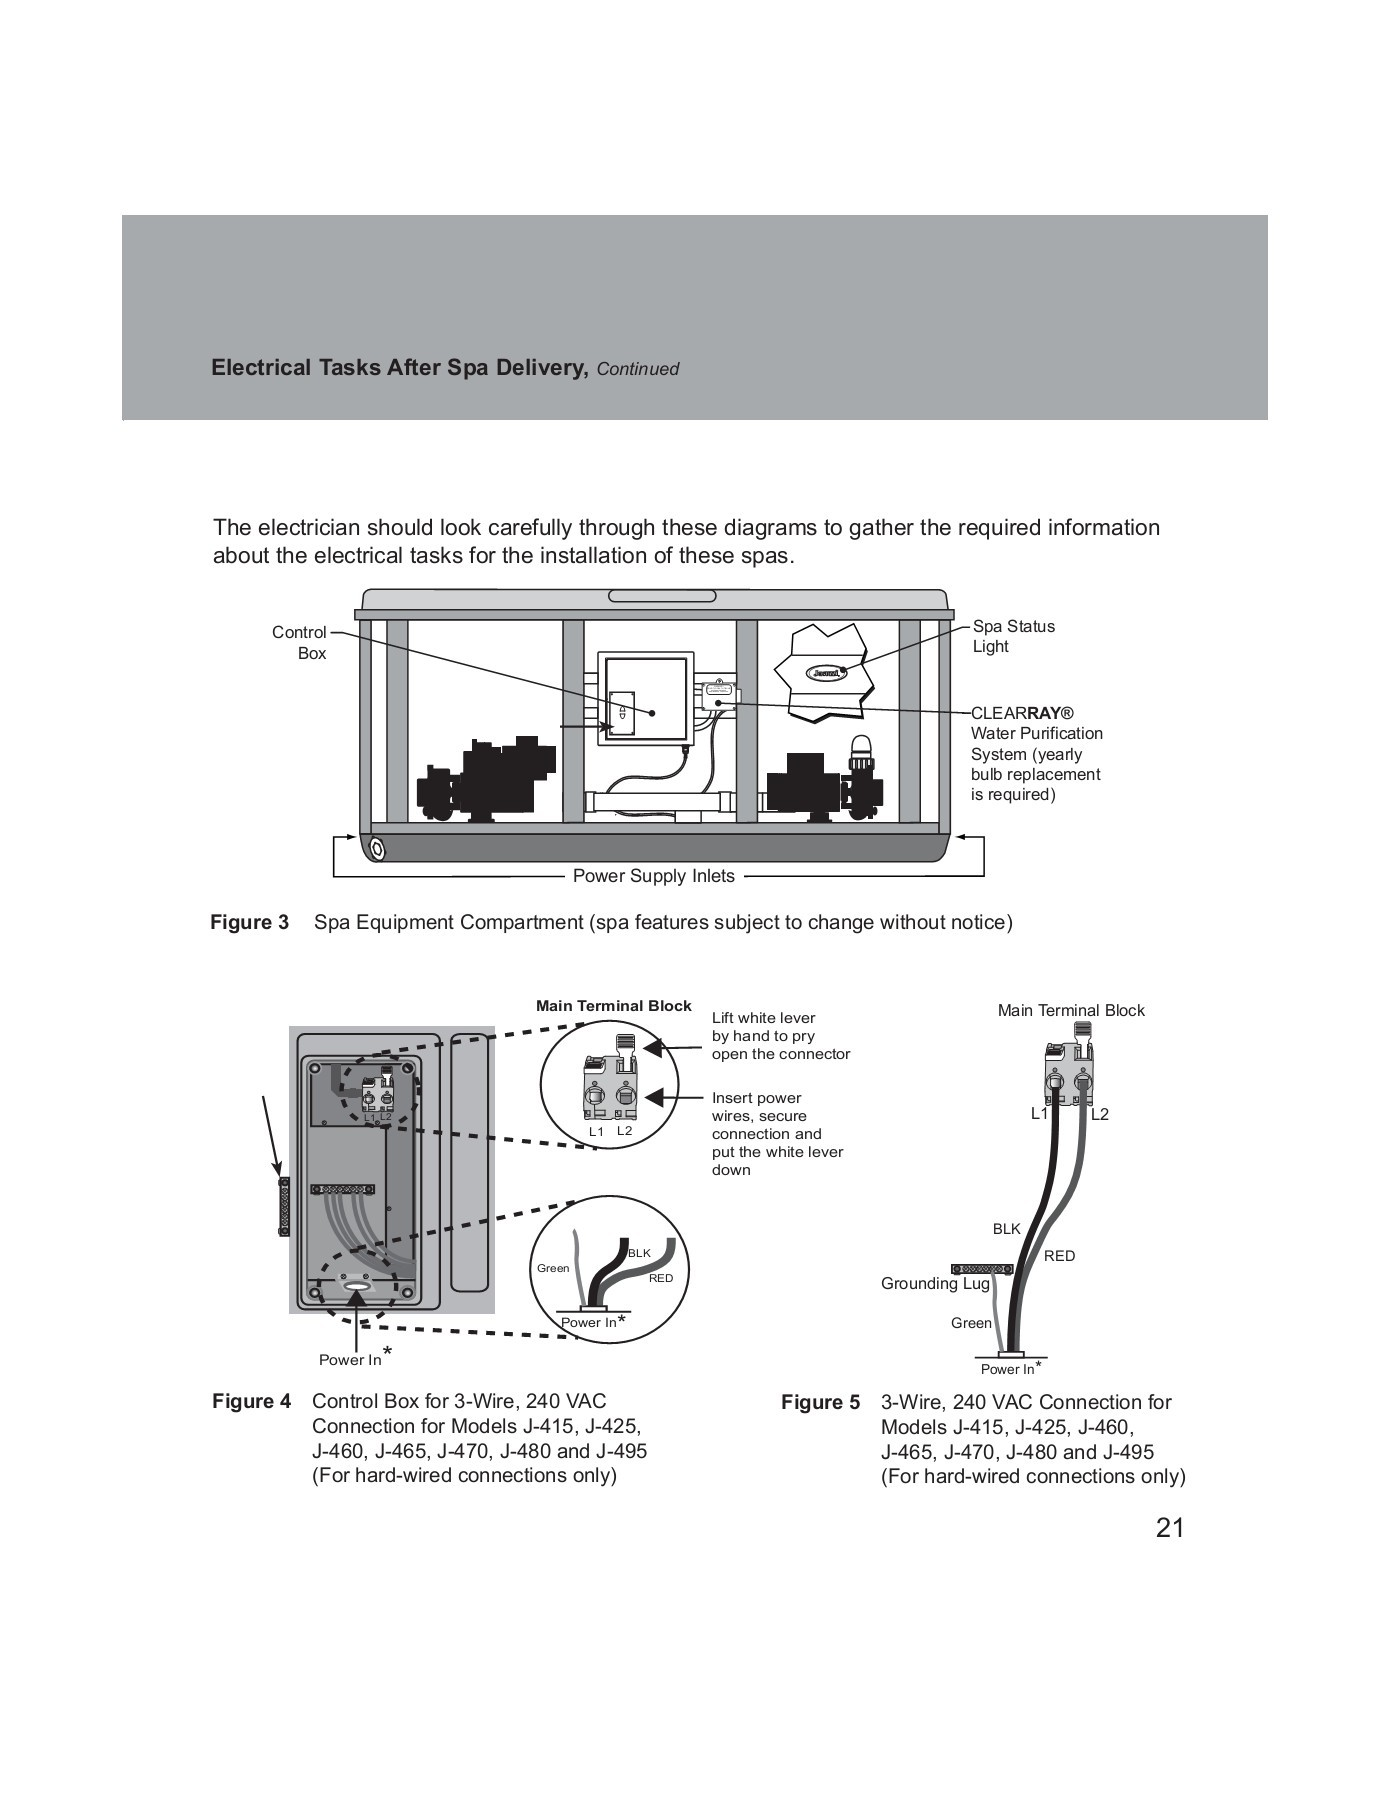 J-415 - Download Jacuzzi Hot Tub Electrical Guide on